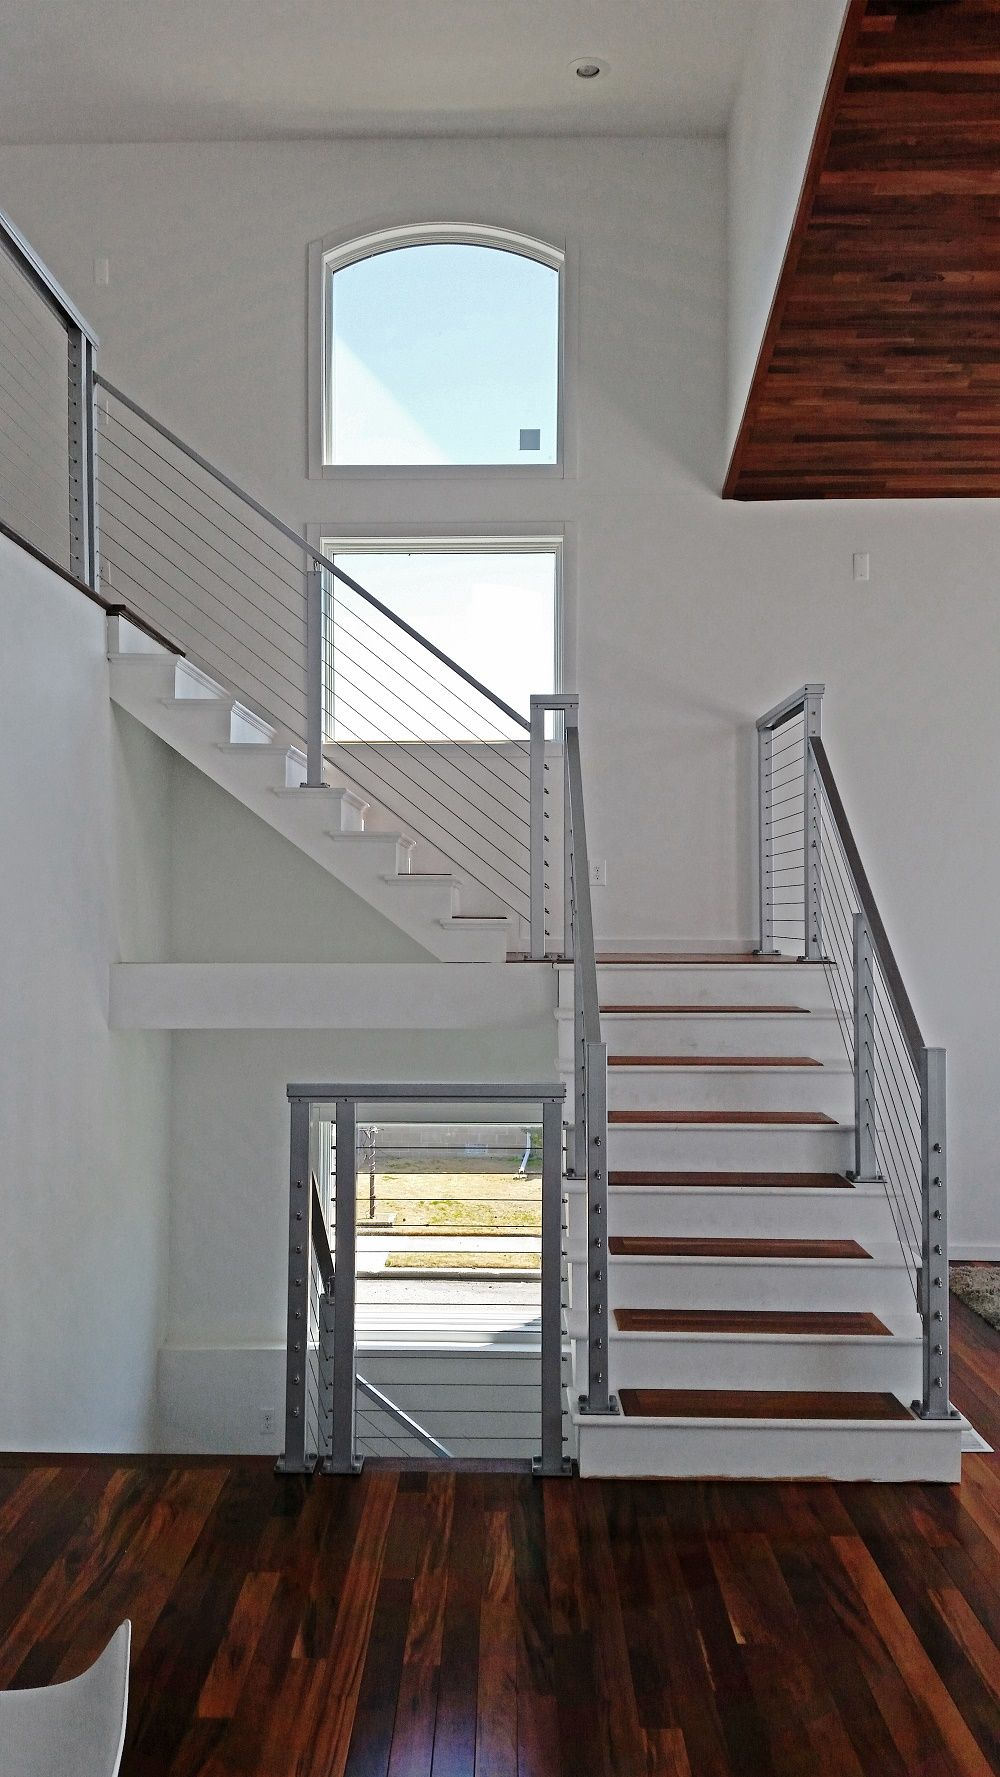 Cable Stair Railing   Square Stainless Steel Posts And Handrail With Cable  Infill By Cable Railing Direct.